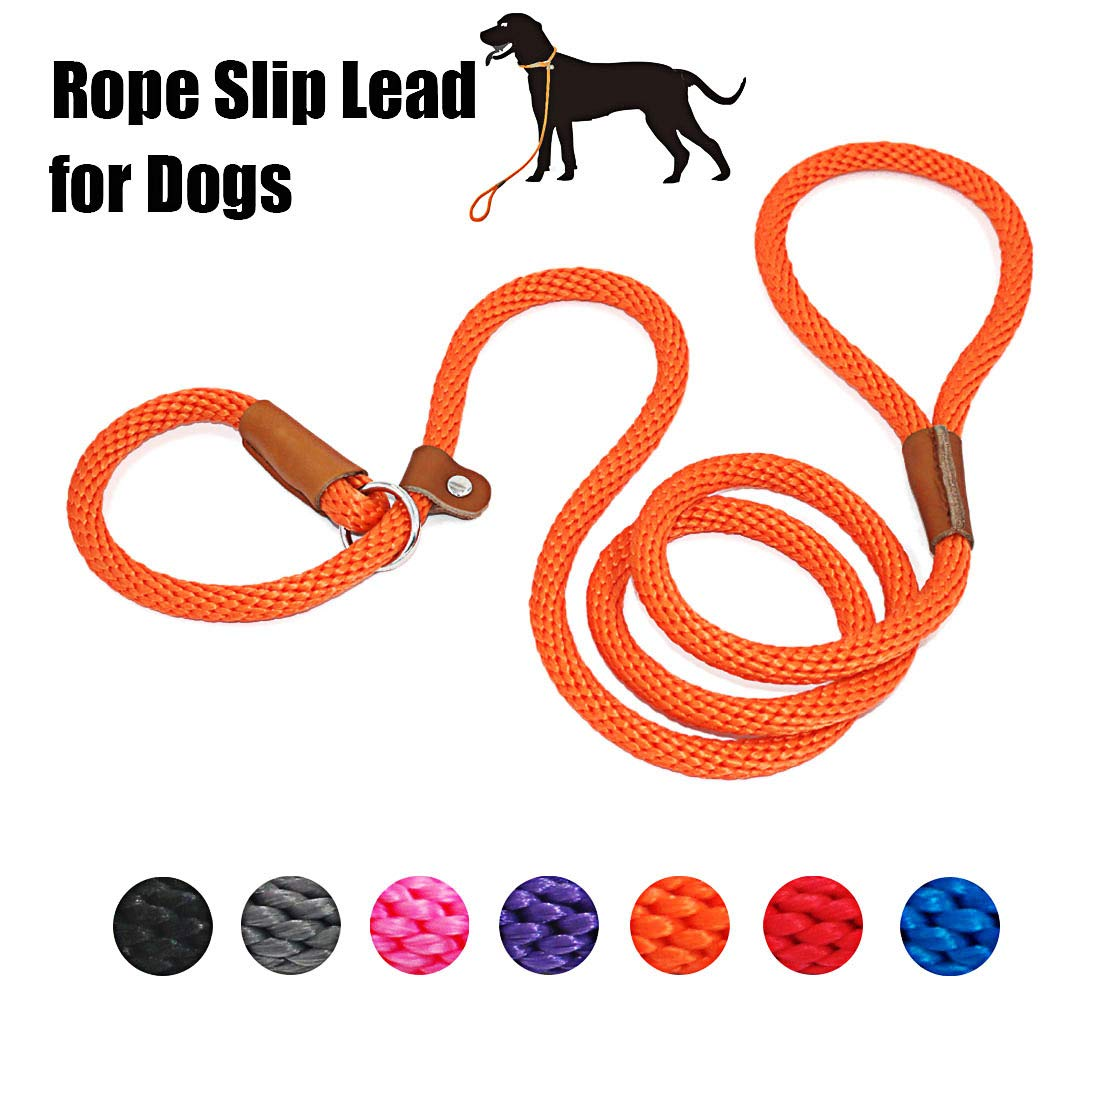 lynxking Dog Leash Rope Slip Leads Strong Heavy Duty No Pull Training Lead Leashes for Medium Large Dogs (5', Orange) by lynxking